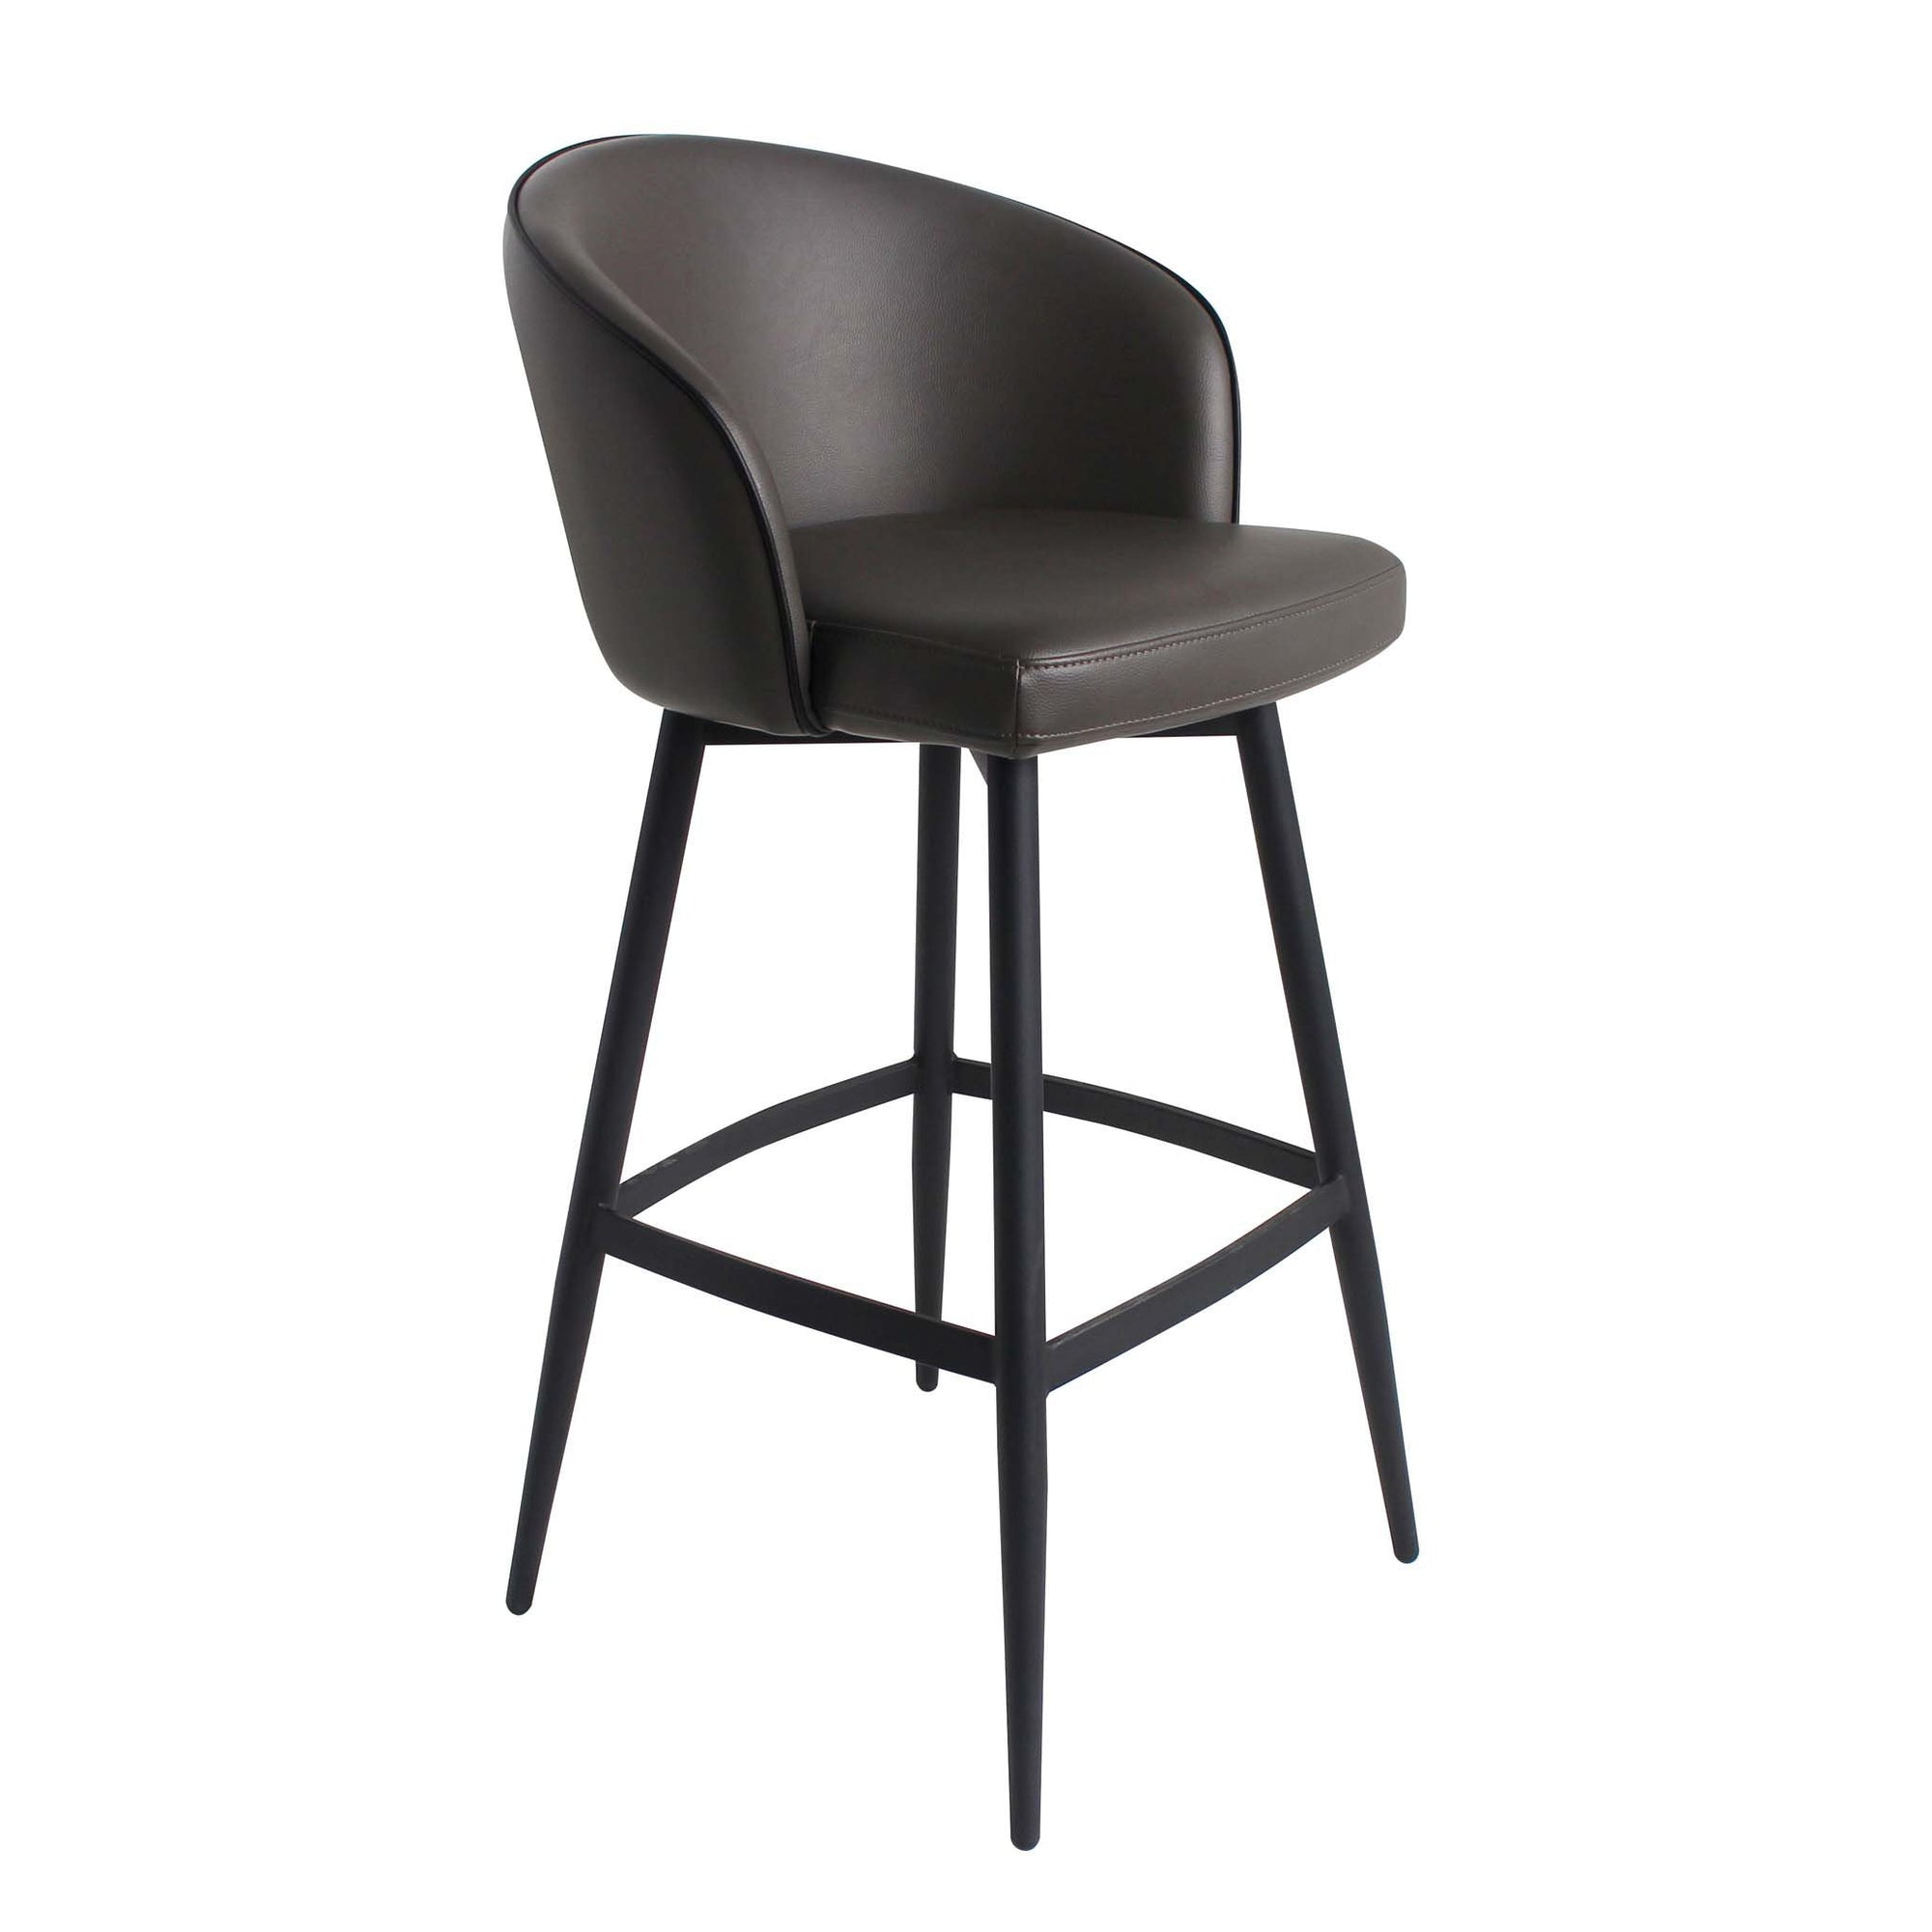 MOES-WEBBER COUNTER STOOL-Bar Stools & Counter Stools-MODTEMPO